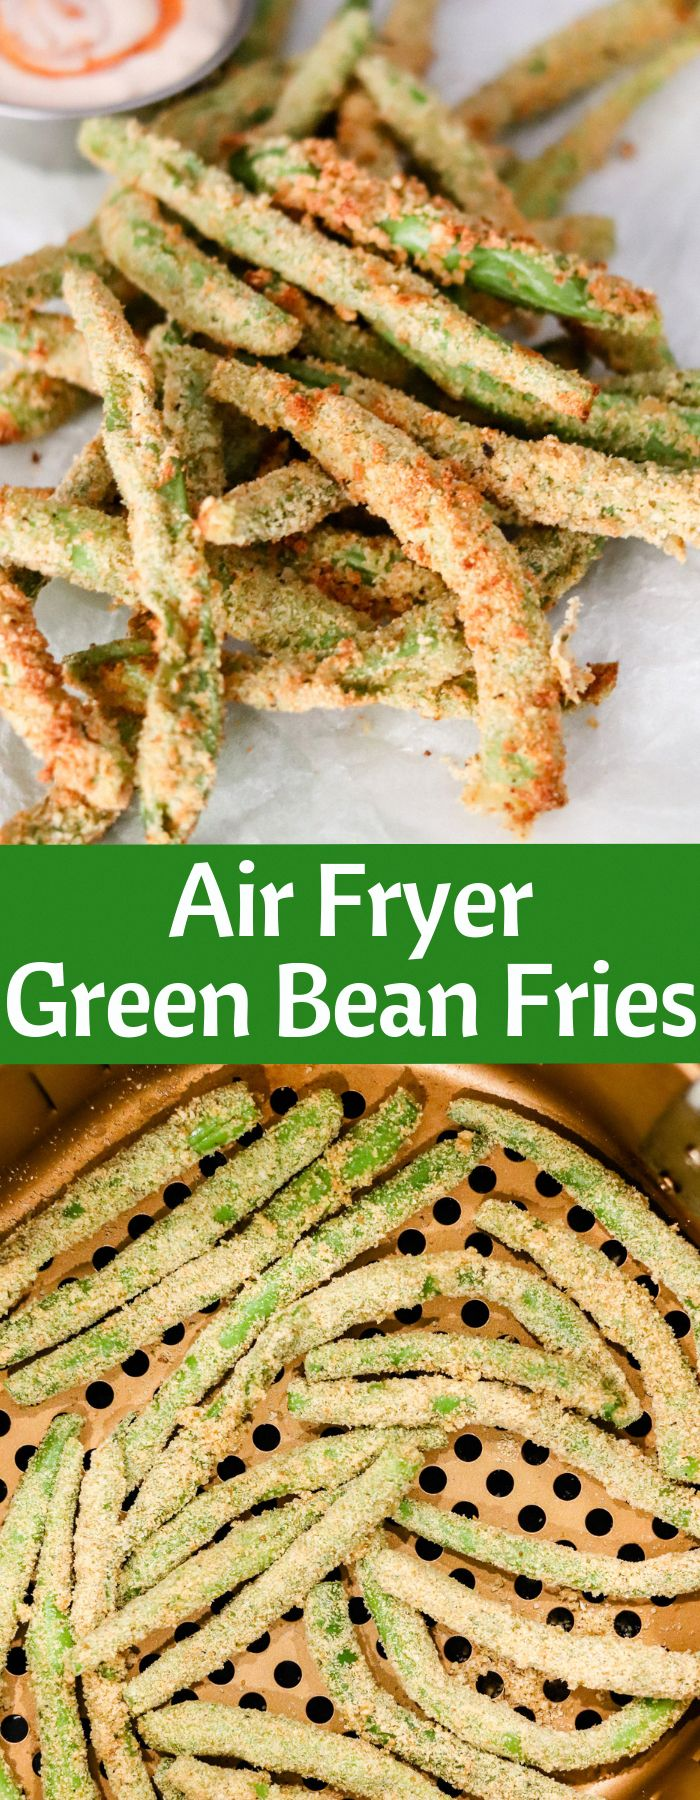 aifryer recipes AirFryerFoods in 2020 Air fryer oven